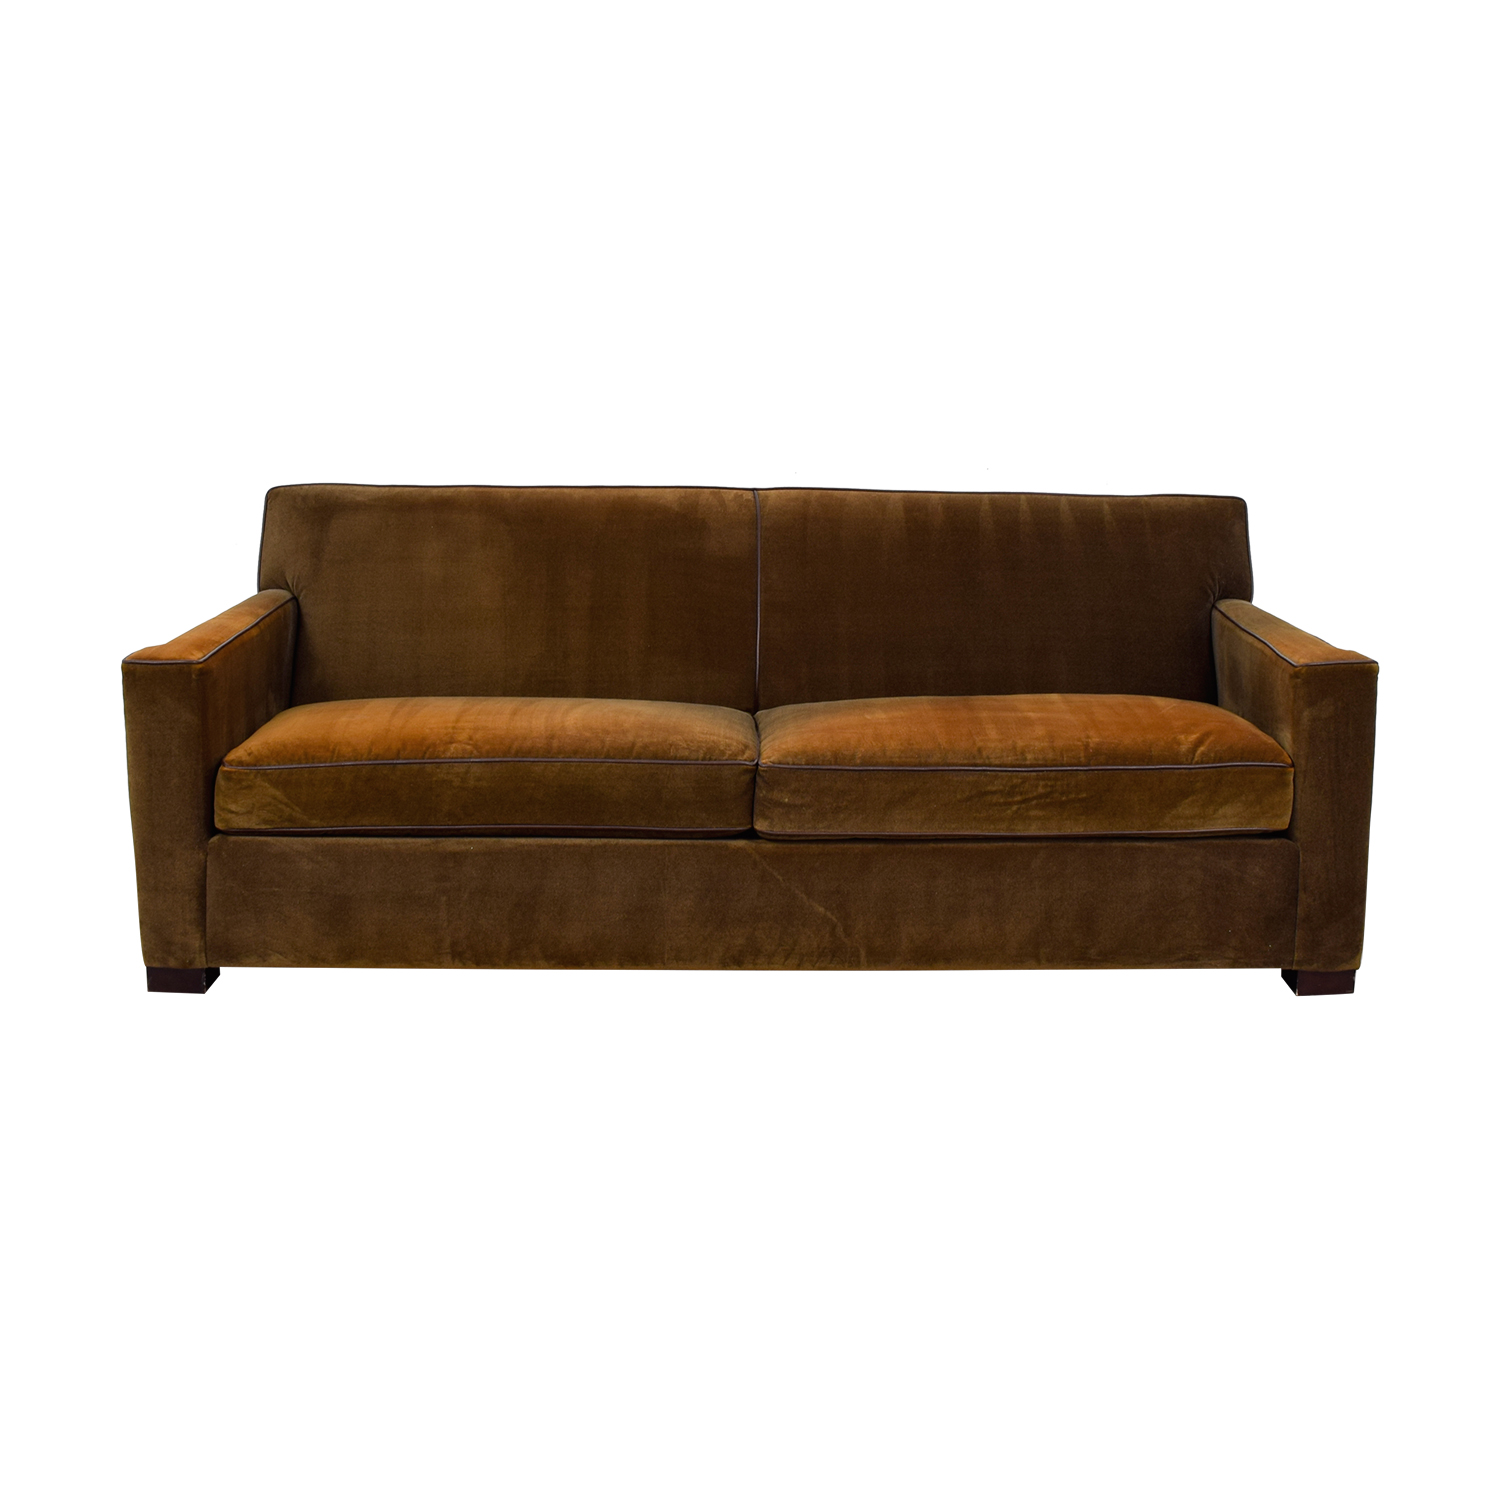 Crate & Barrel Crate & Barrel Chocolate Brown Sofa price